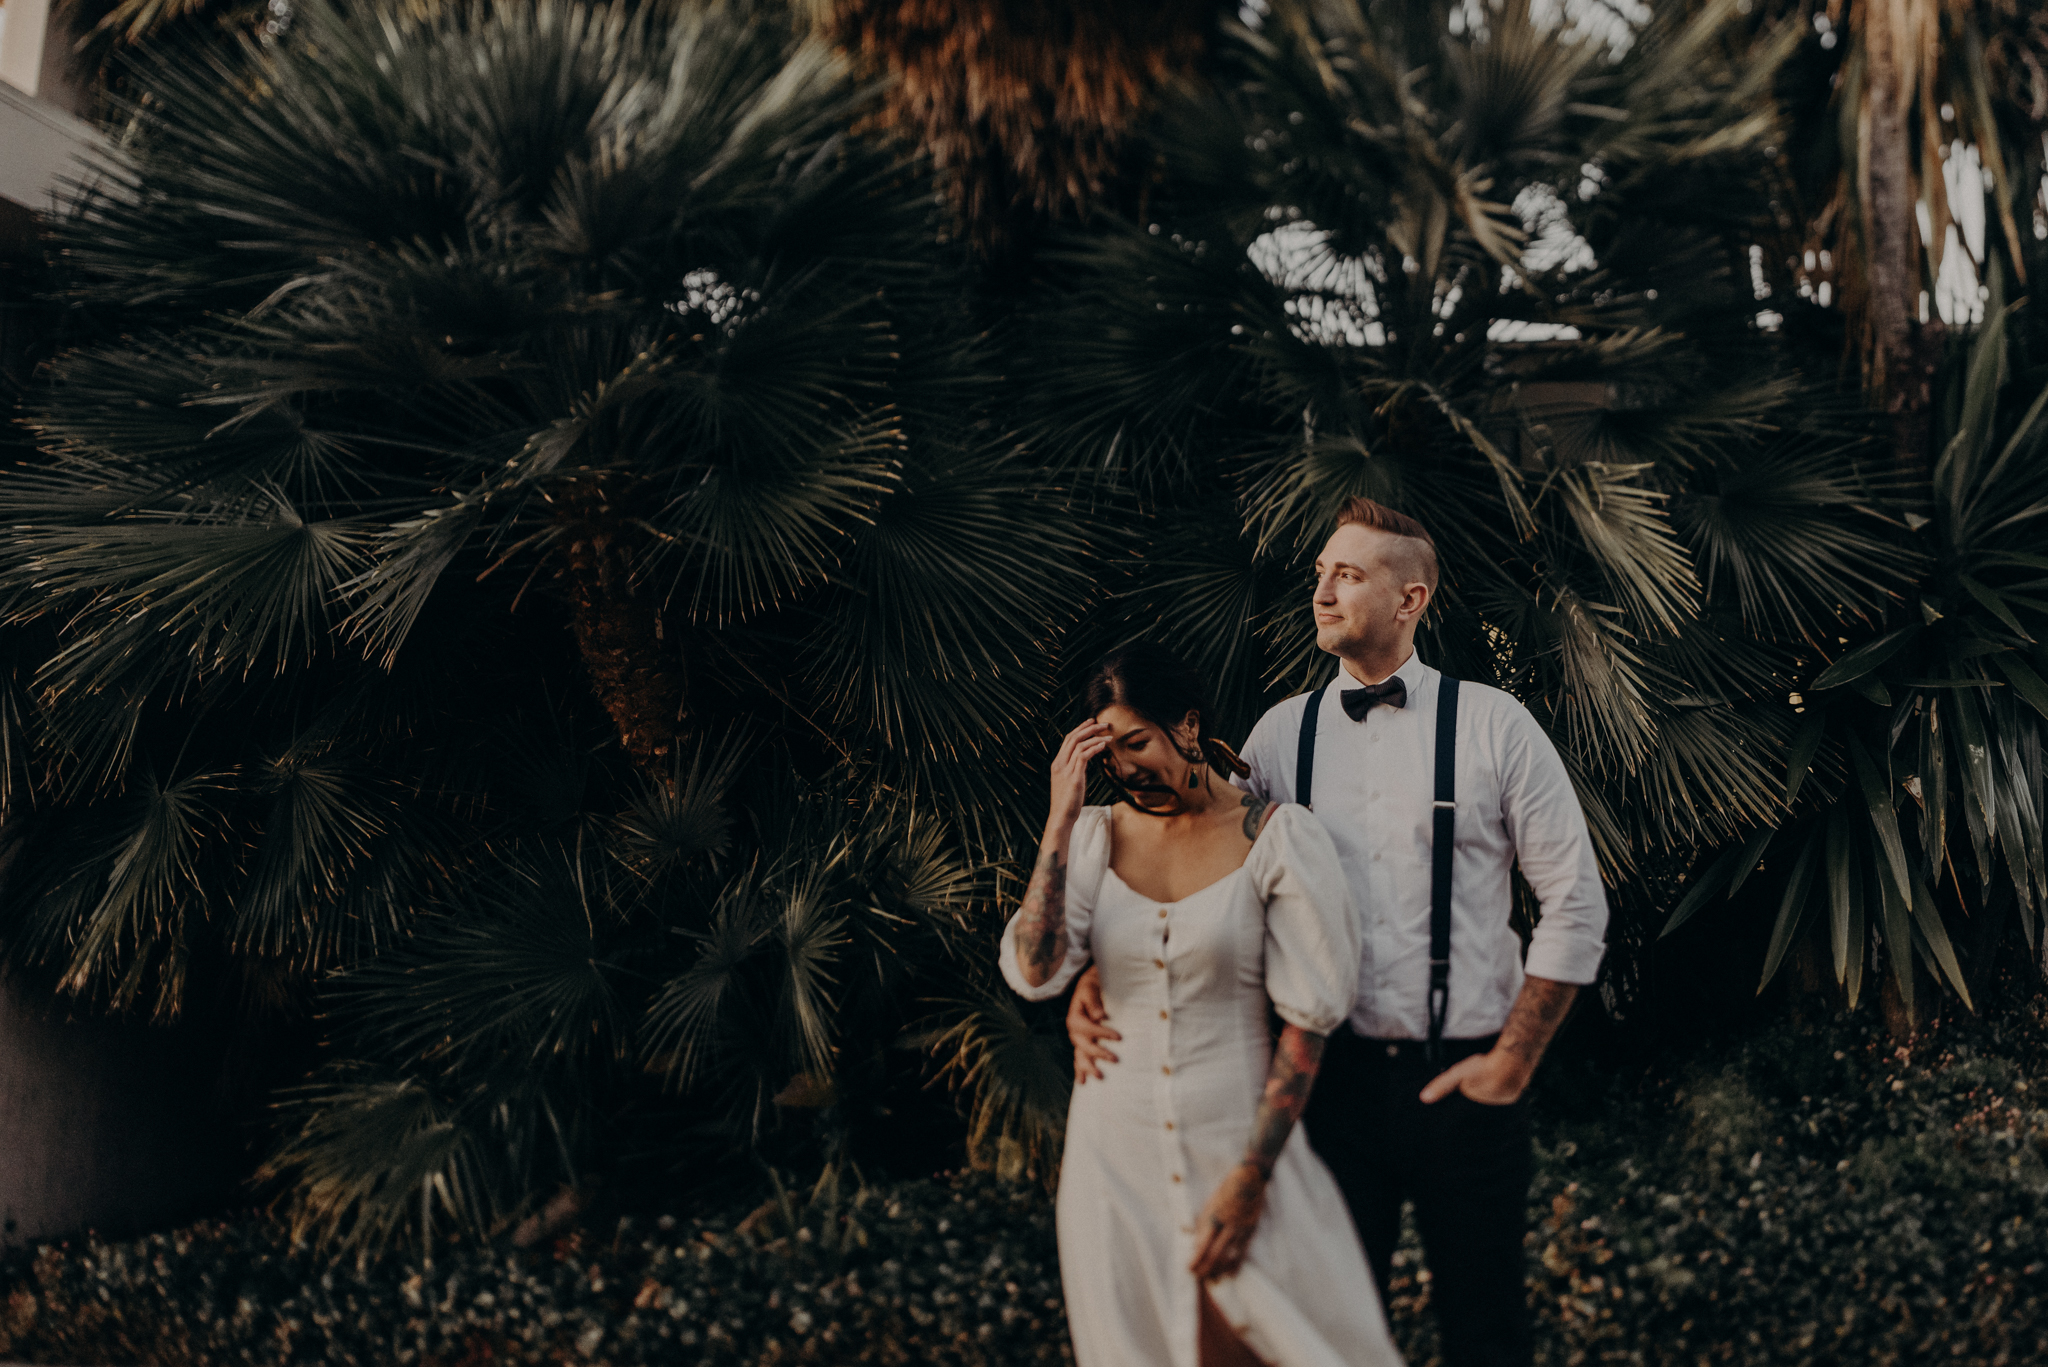 Wedding Photographer in LA - Los Angeles Wedding Photos - Tattoo Shop Engagement Session - IsaiahAndTaylor.com-054.jpg